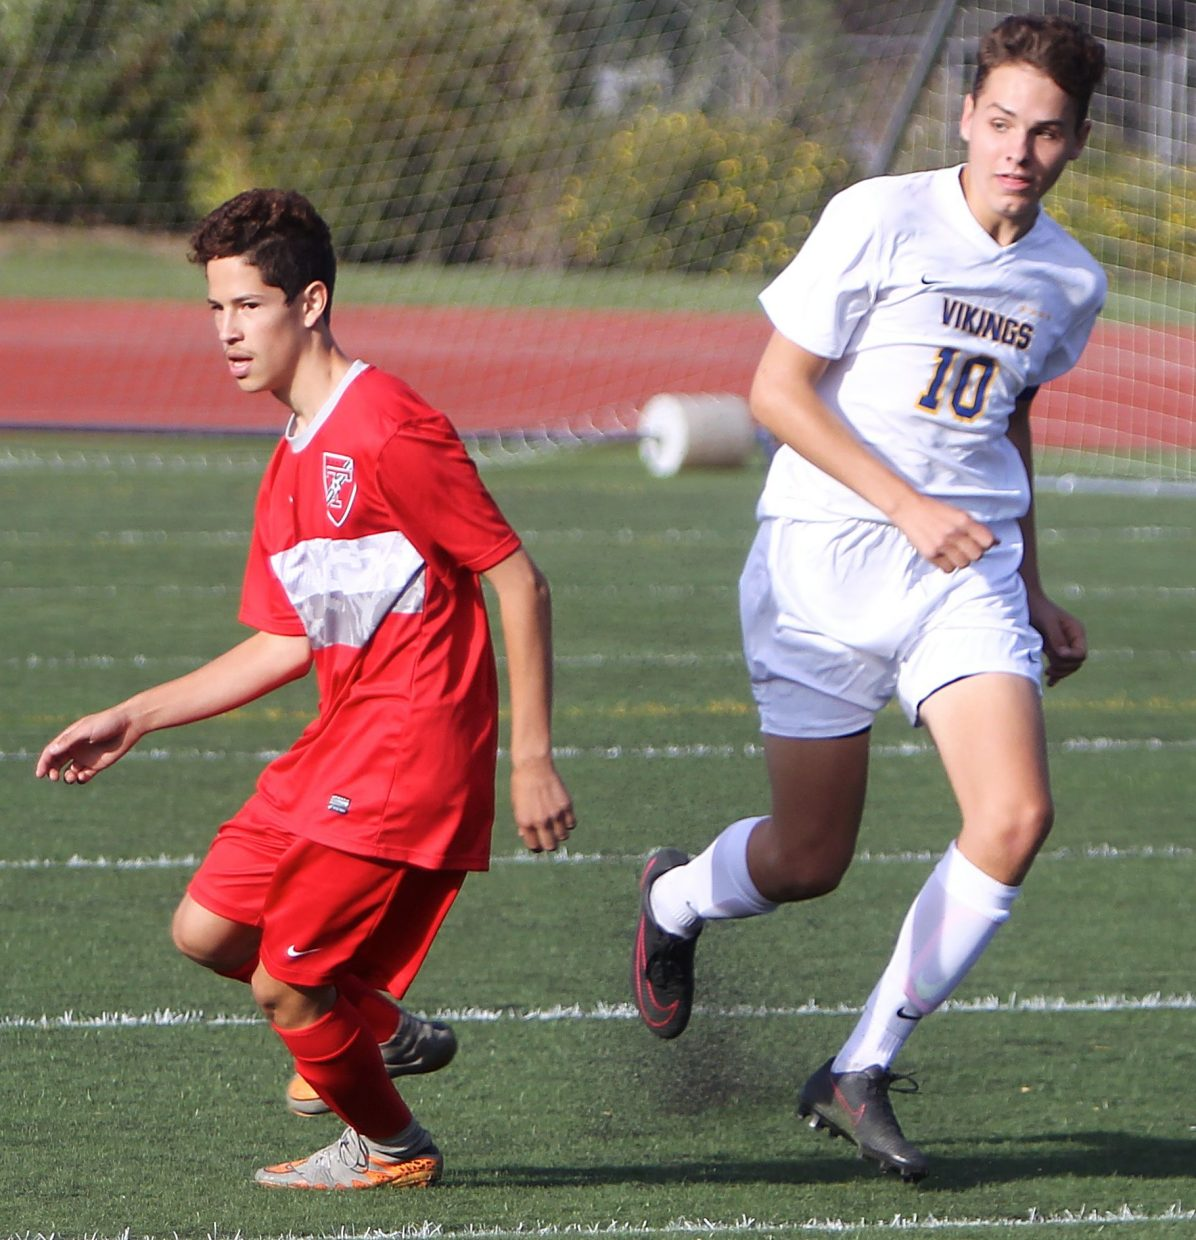 Vikings senior Lex Merrifield runs past Truckee's Joel Garcia on Tuesday.